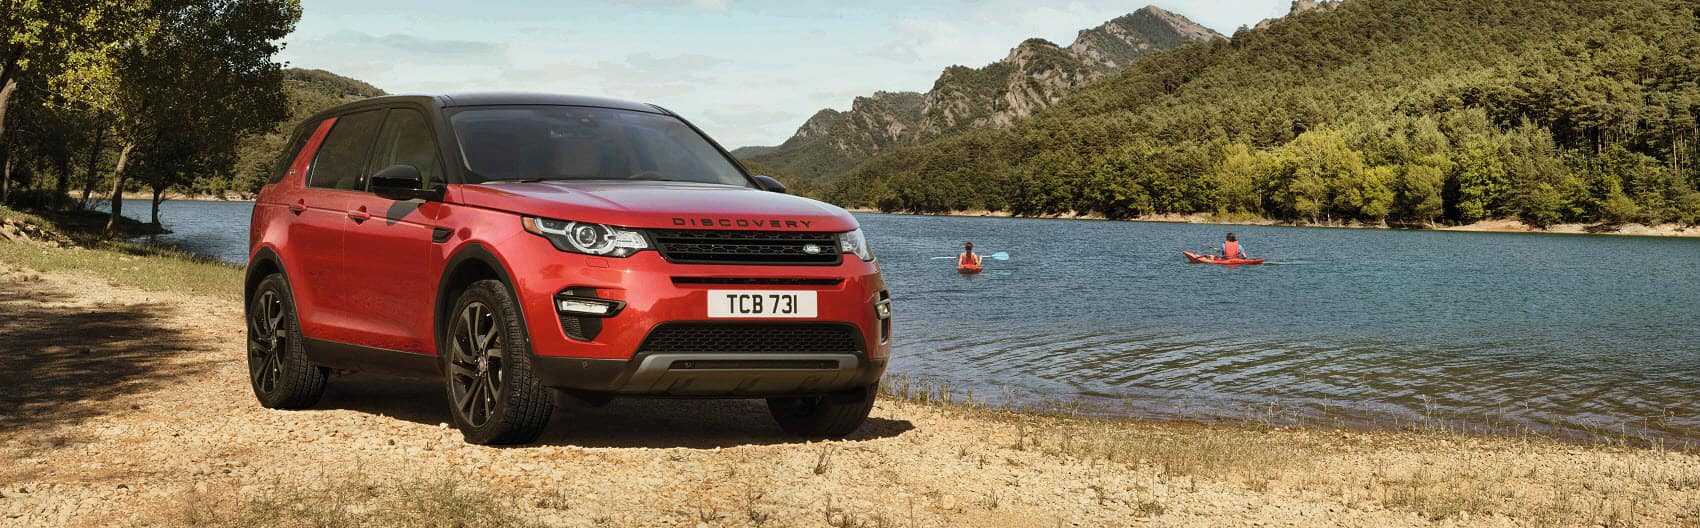 Land Rover Discovery Sport Configurations